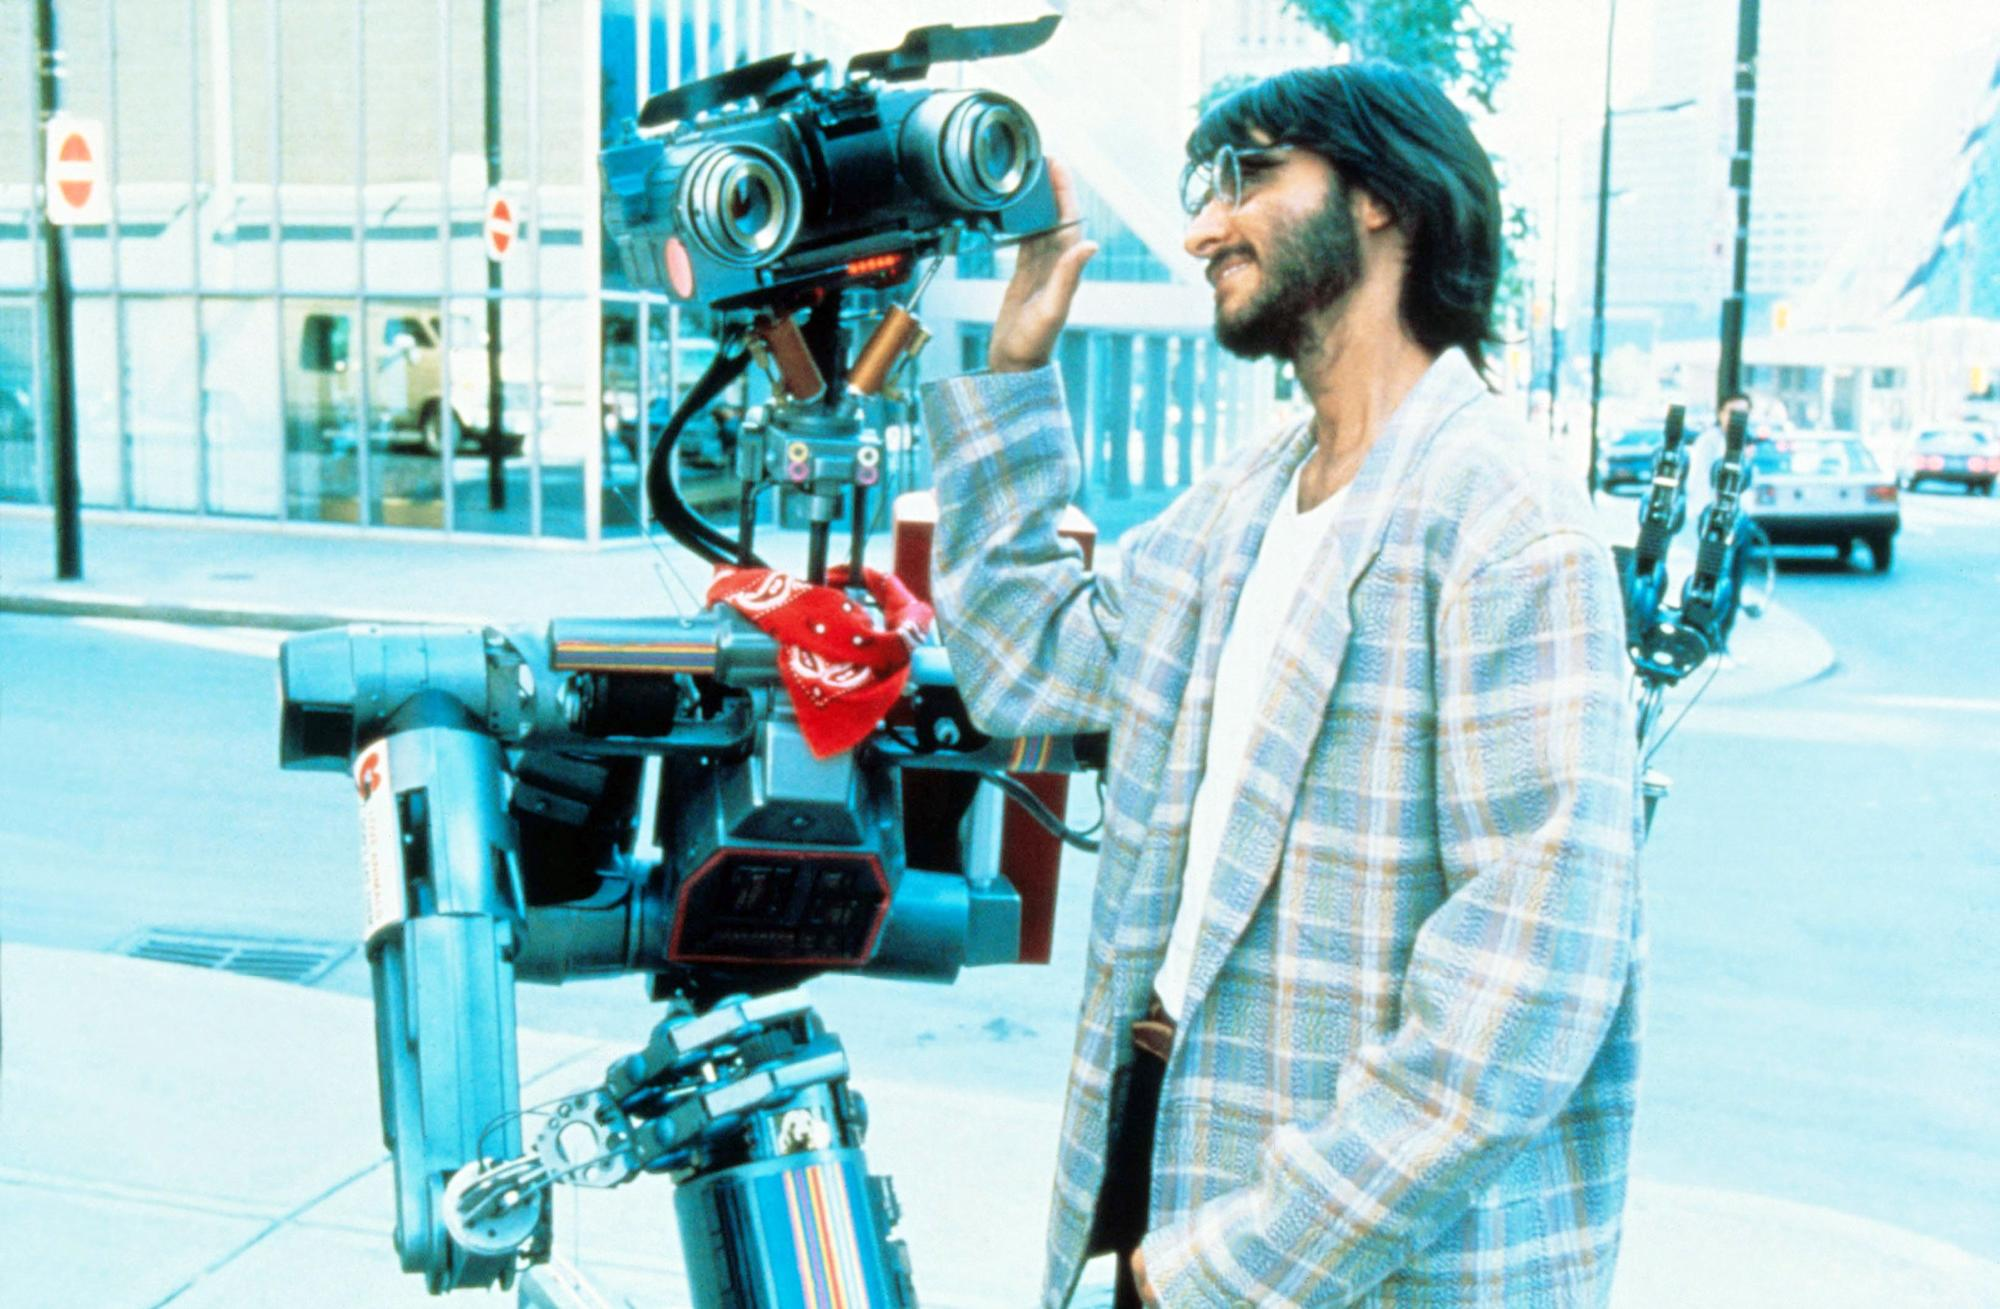 Fisher Stevens regrets his controversial 'Short Circuit' role: 'It definitely haunts me'